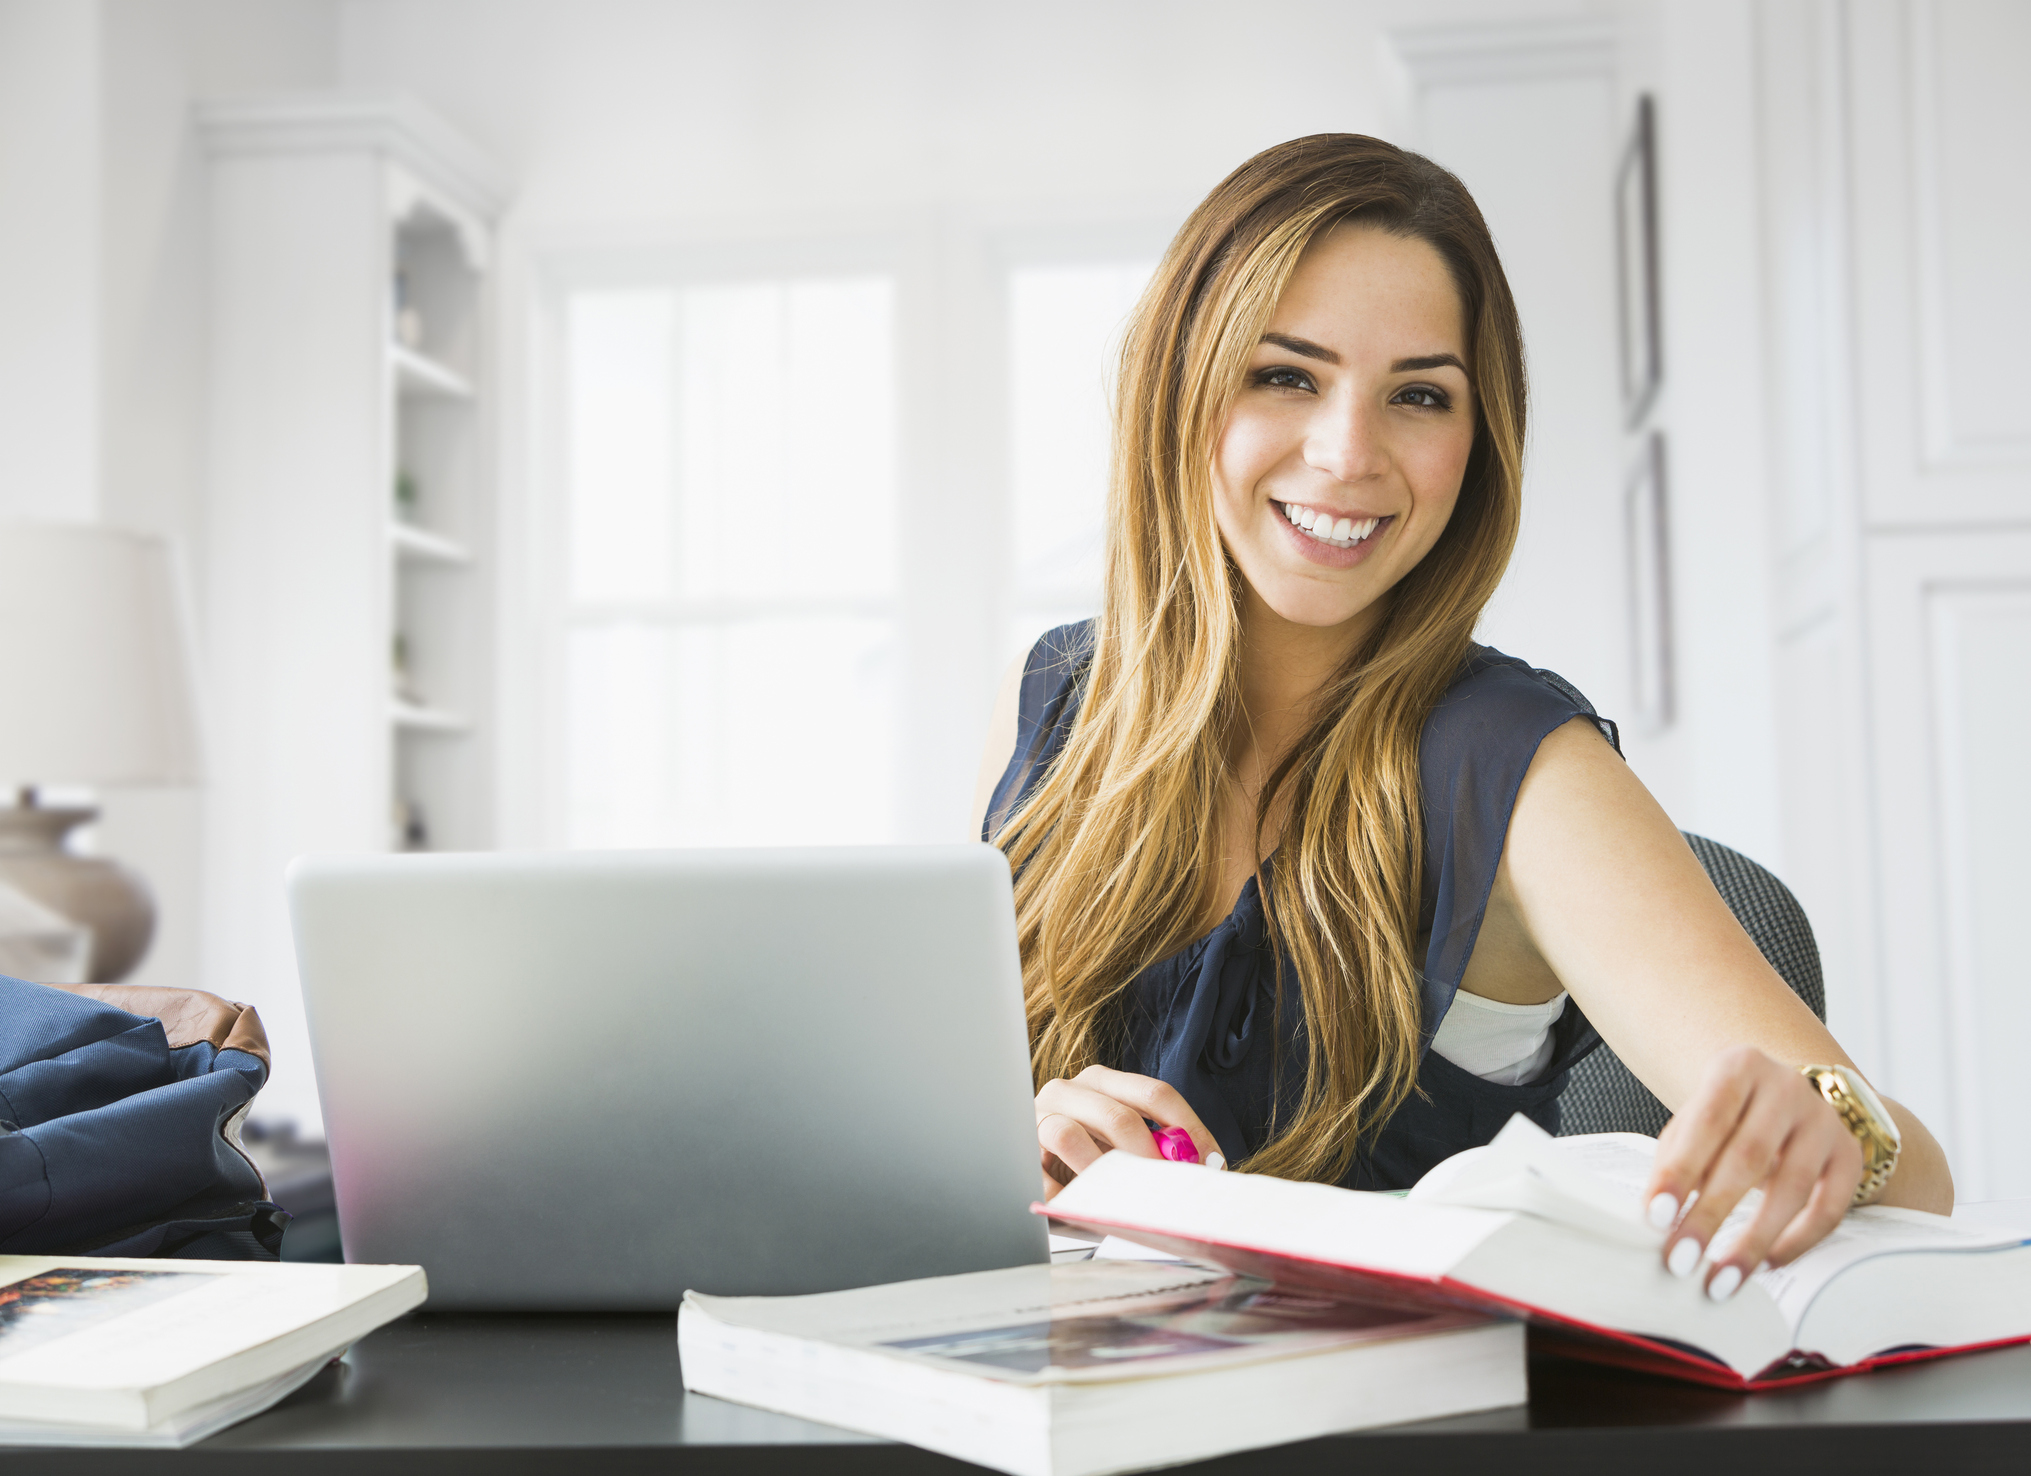 Falling Money Hd Wallpaper Avoid Falling For These 10 Online Education Myths Online